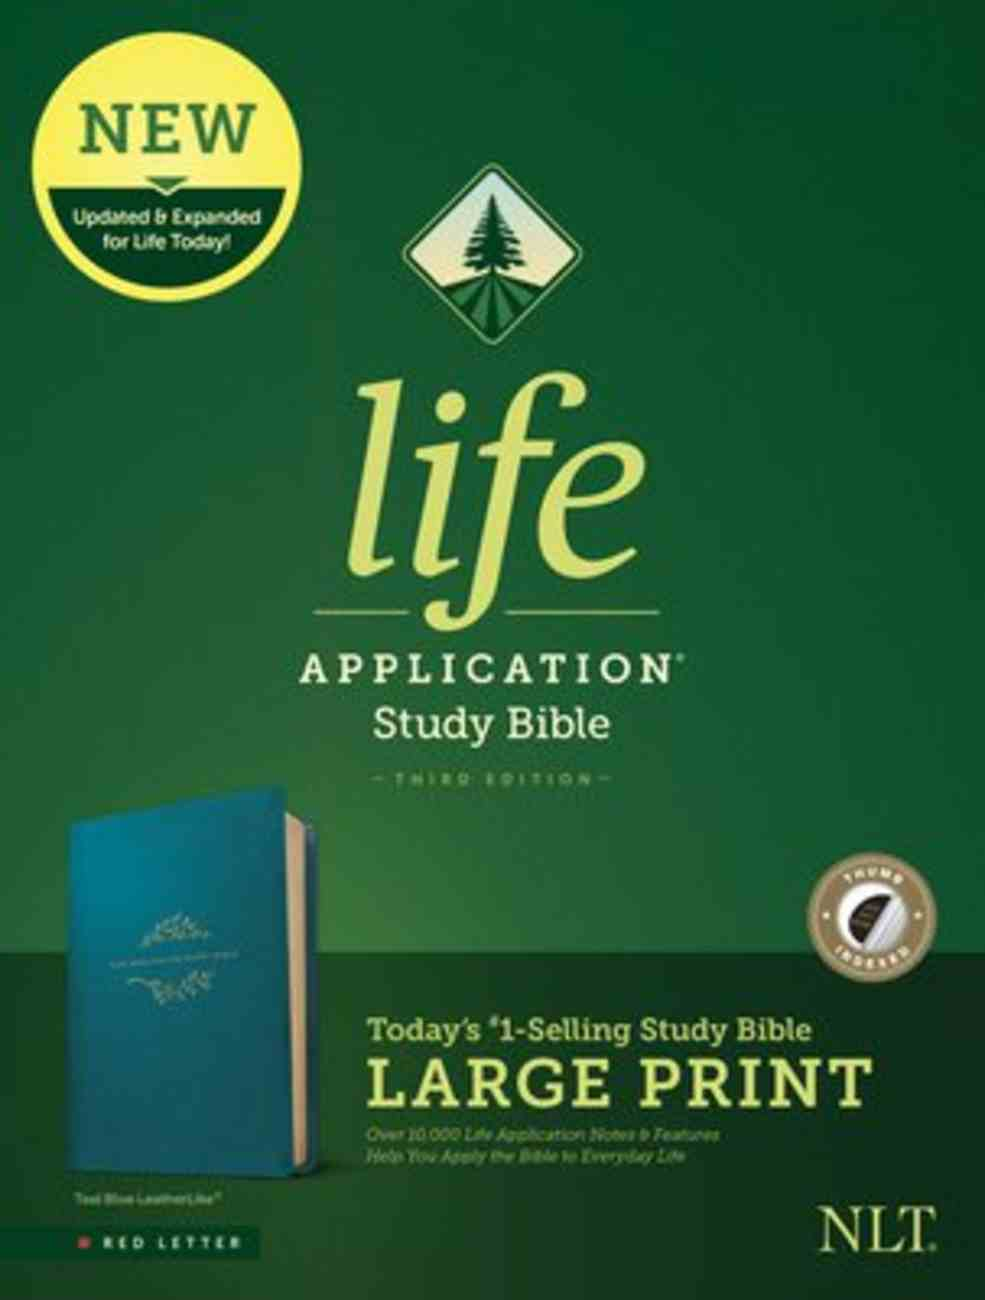 NLT Life Application Study Bible 3rd Edition Large Print Teal Blue Indexed (Red Letter Edition) Imitation Leather